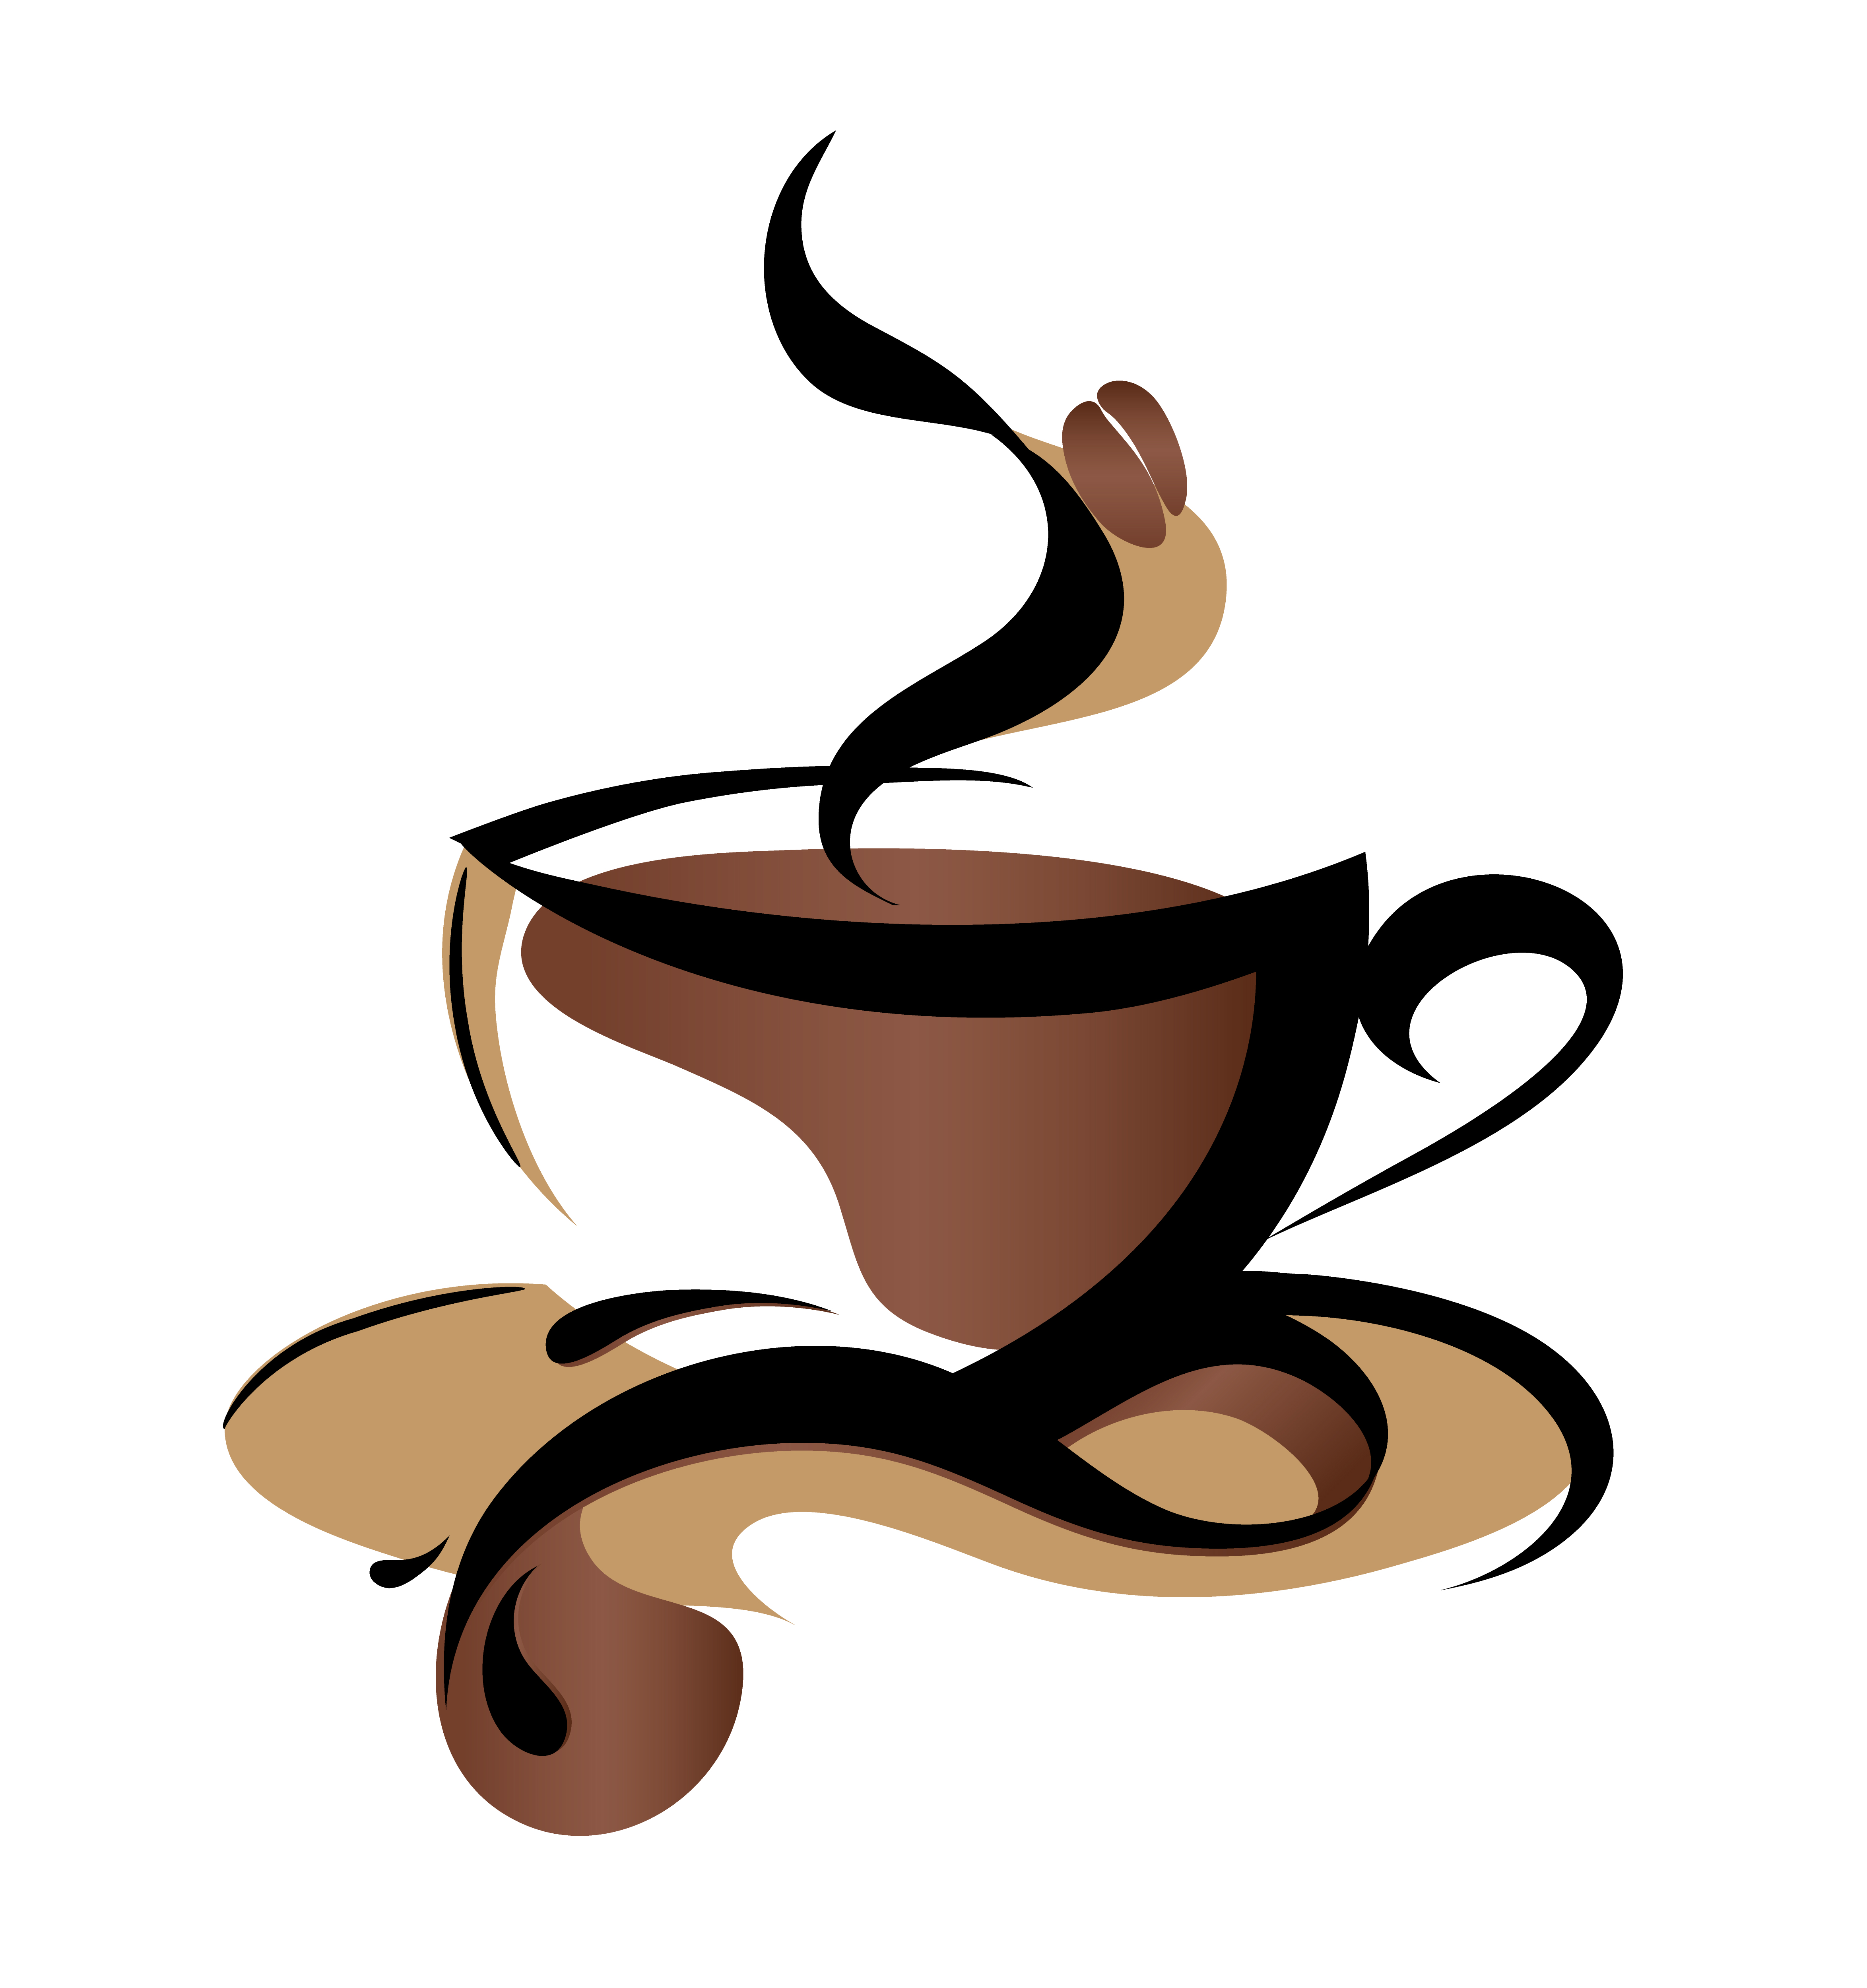 graphic transparent download Free cup graphic download. Steaming coffee mug clipart